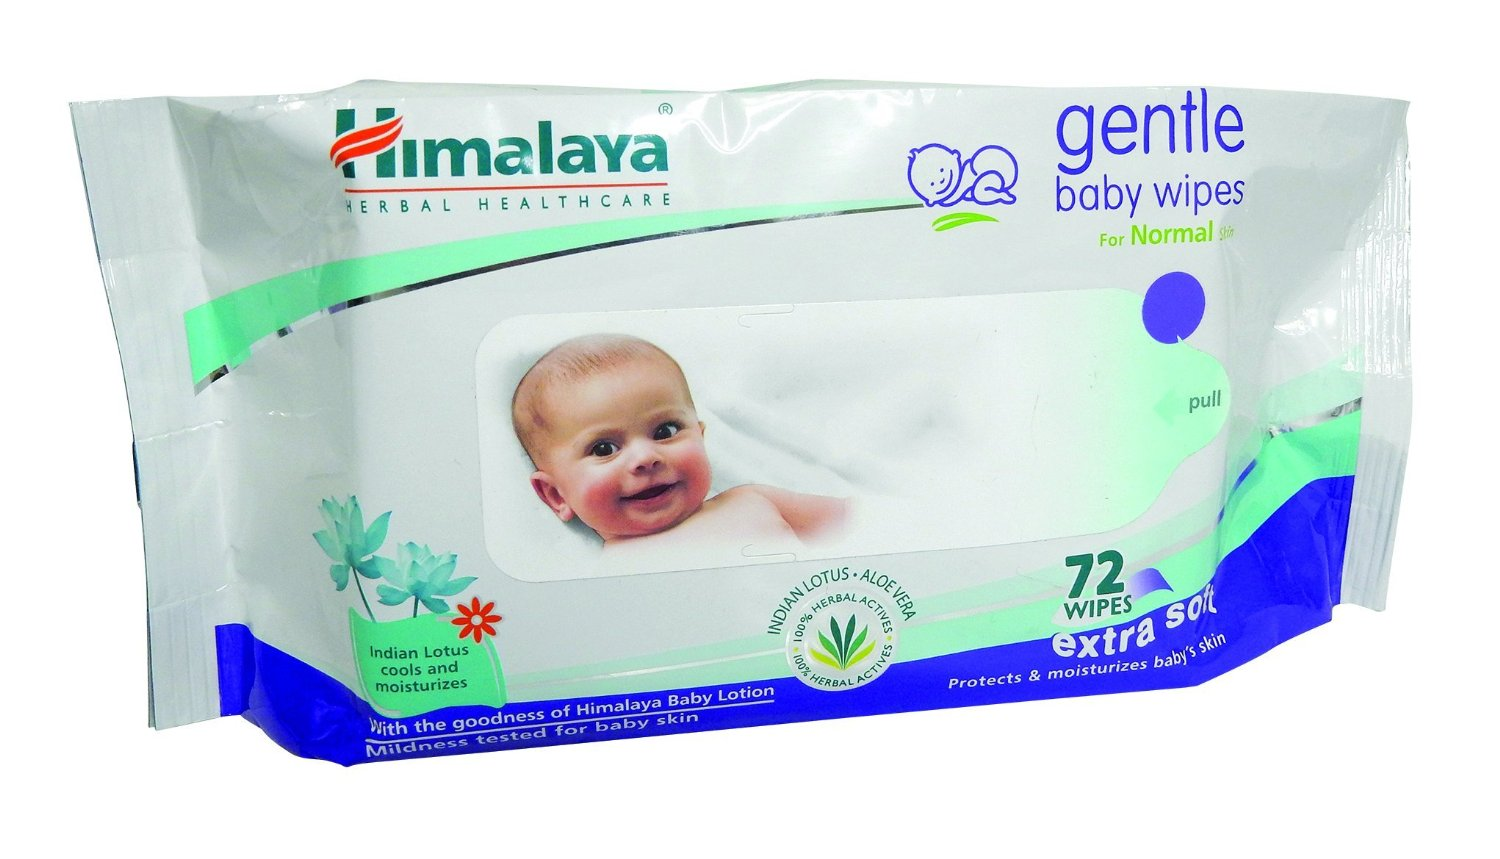 Himalaya Herbals Gentle Baby Wipes (72 Sheets) for Rs 99 (43% off)